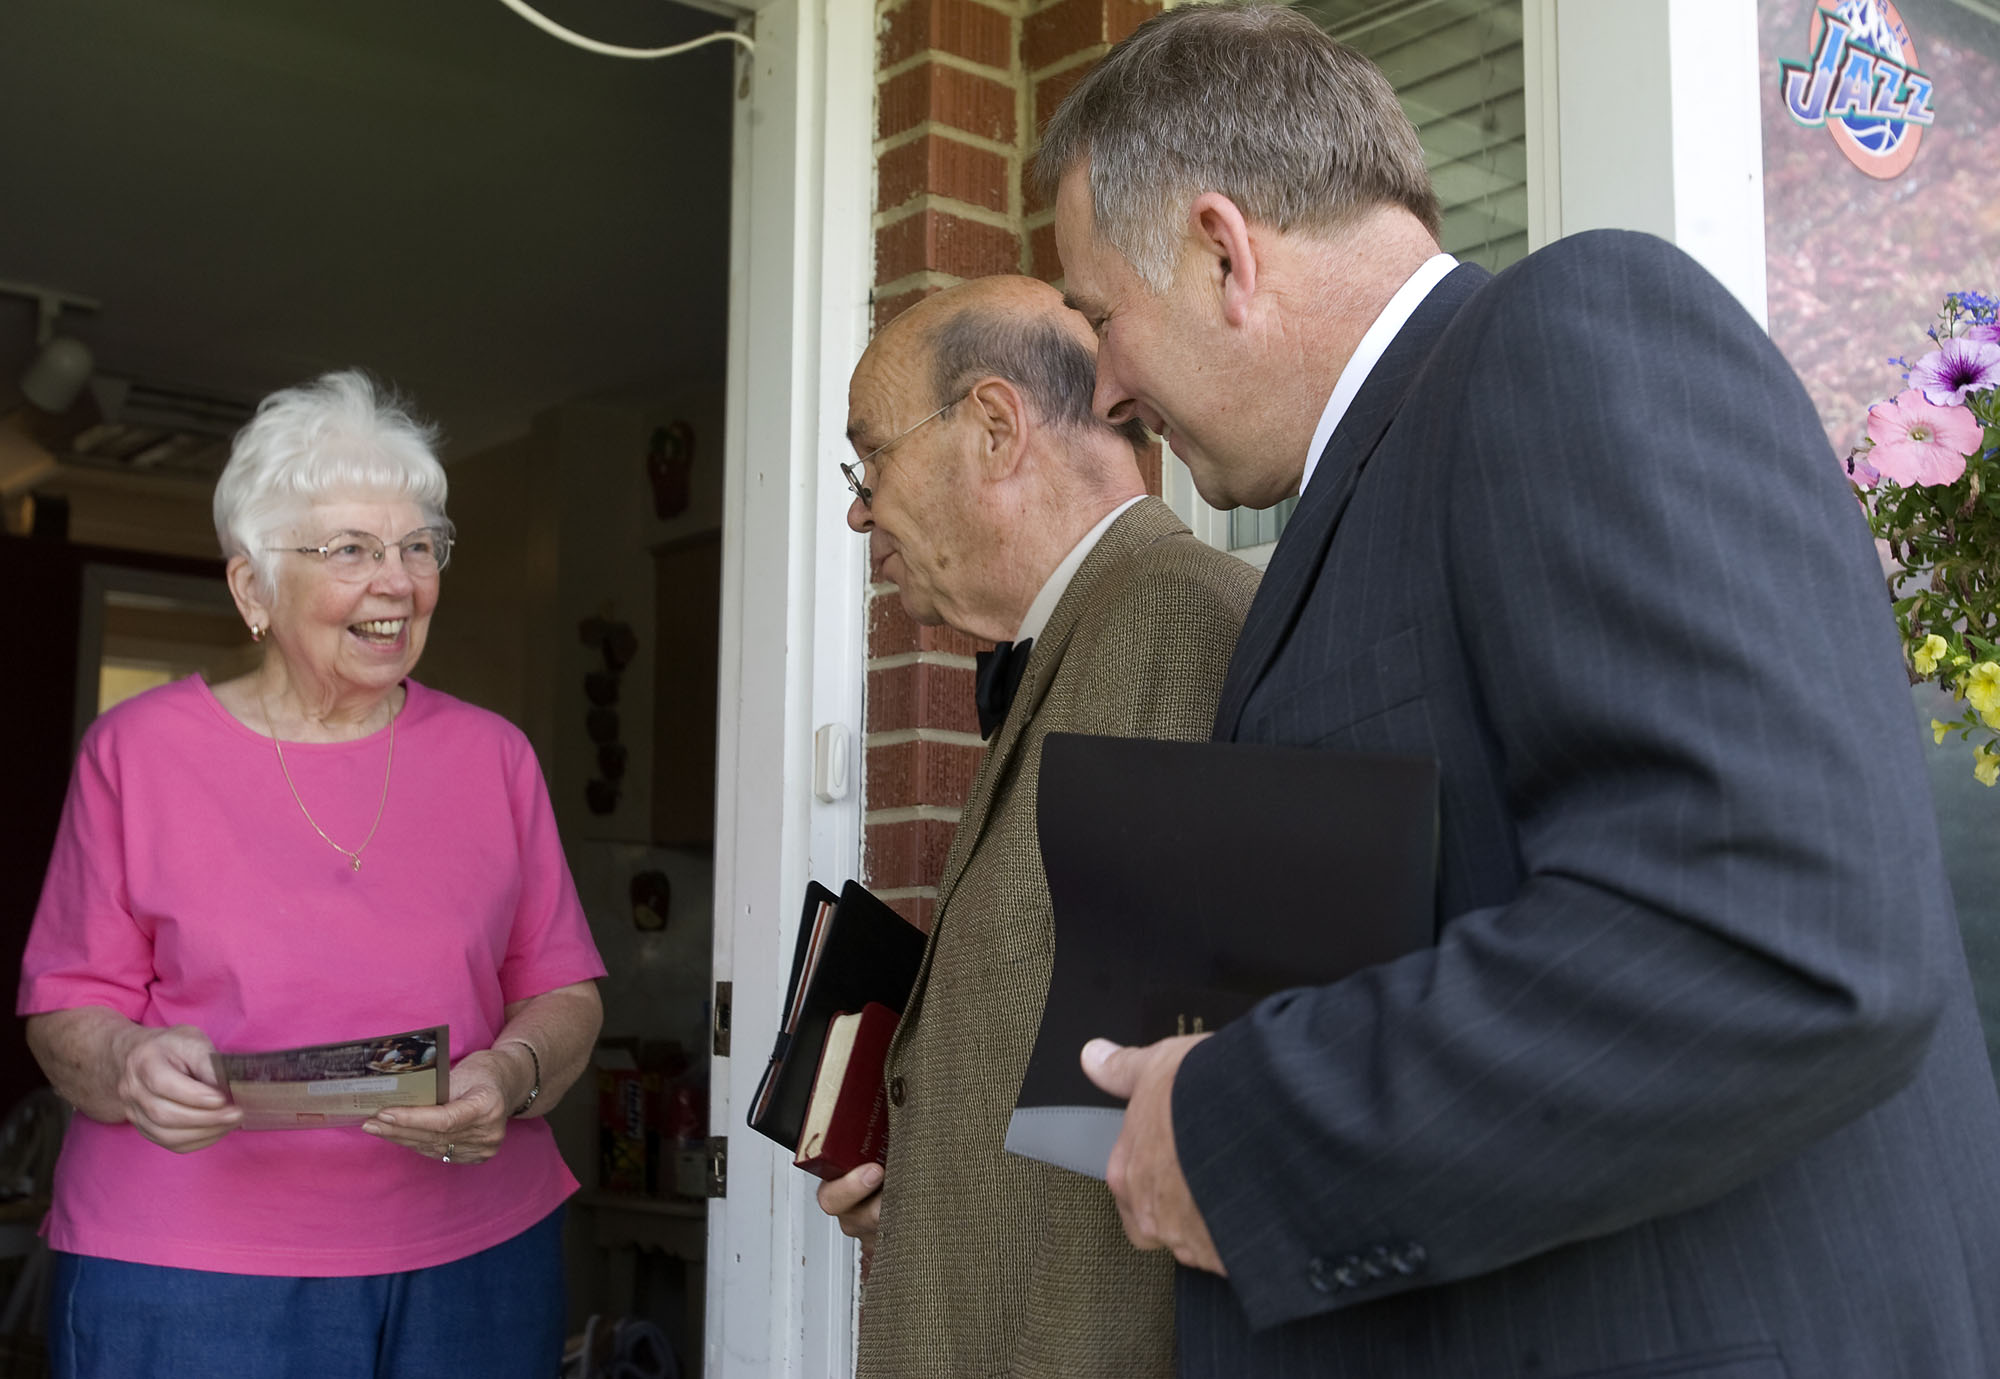 What to say to a jehovah witness